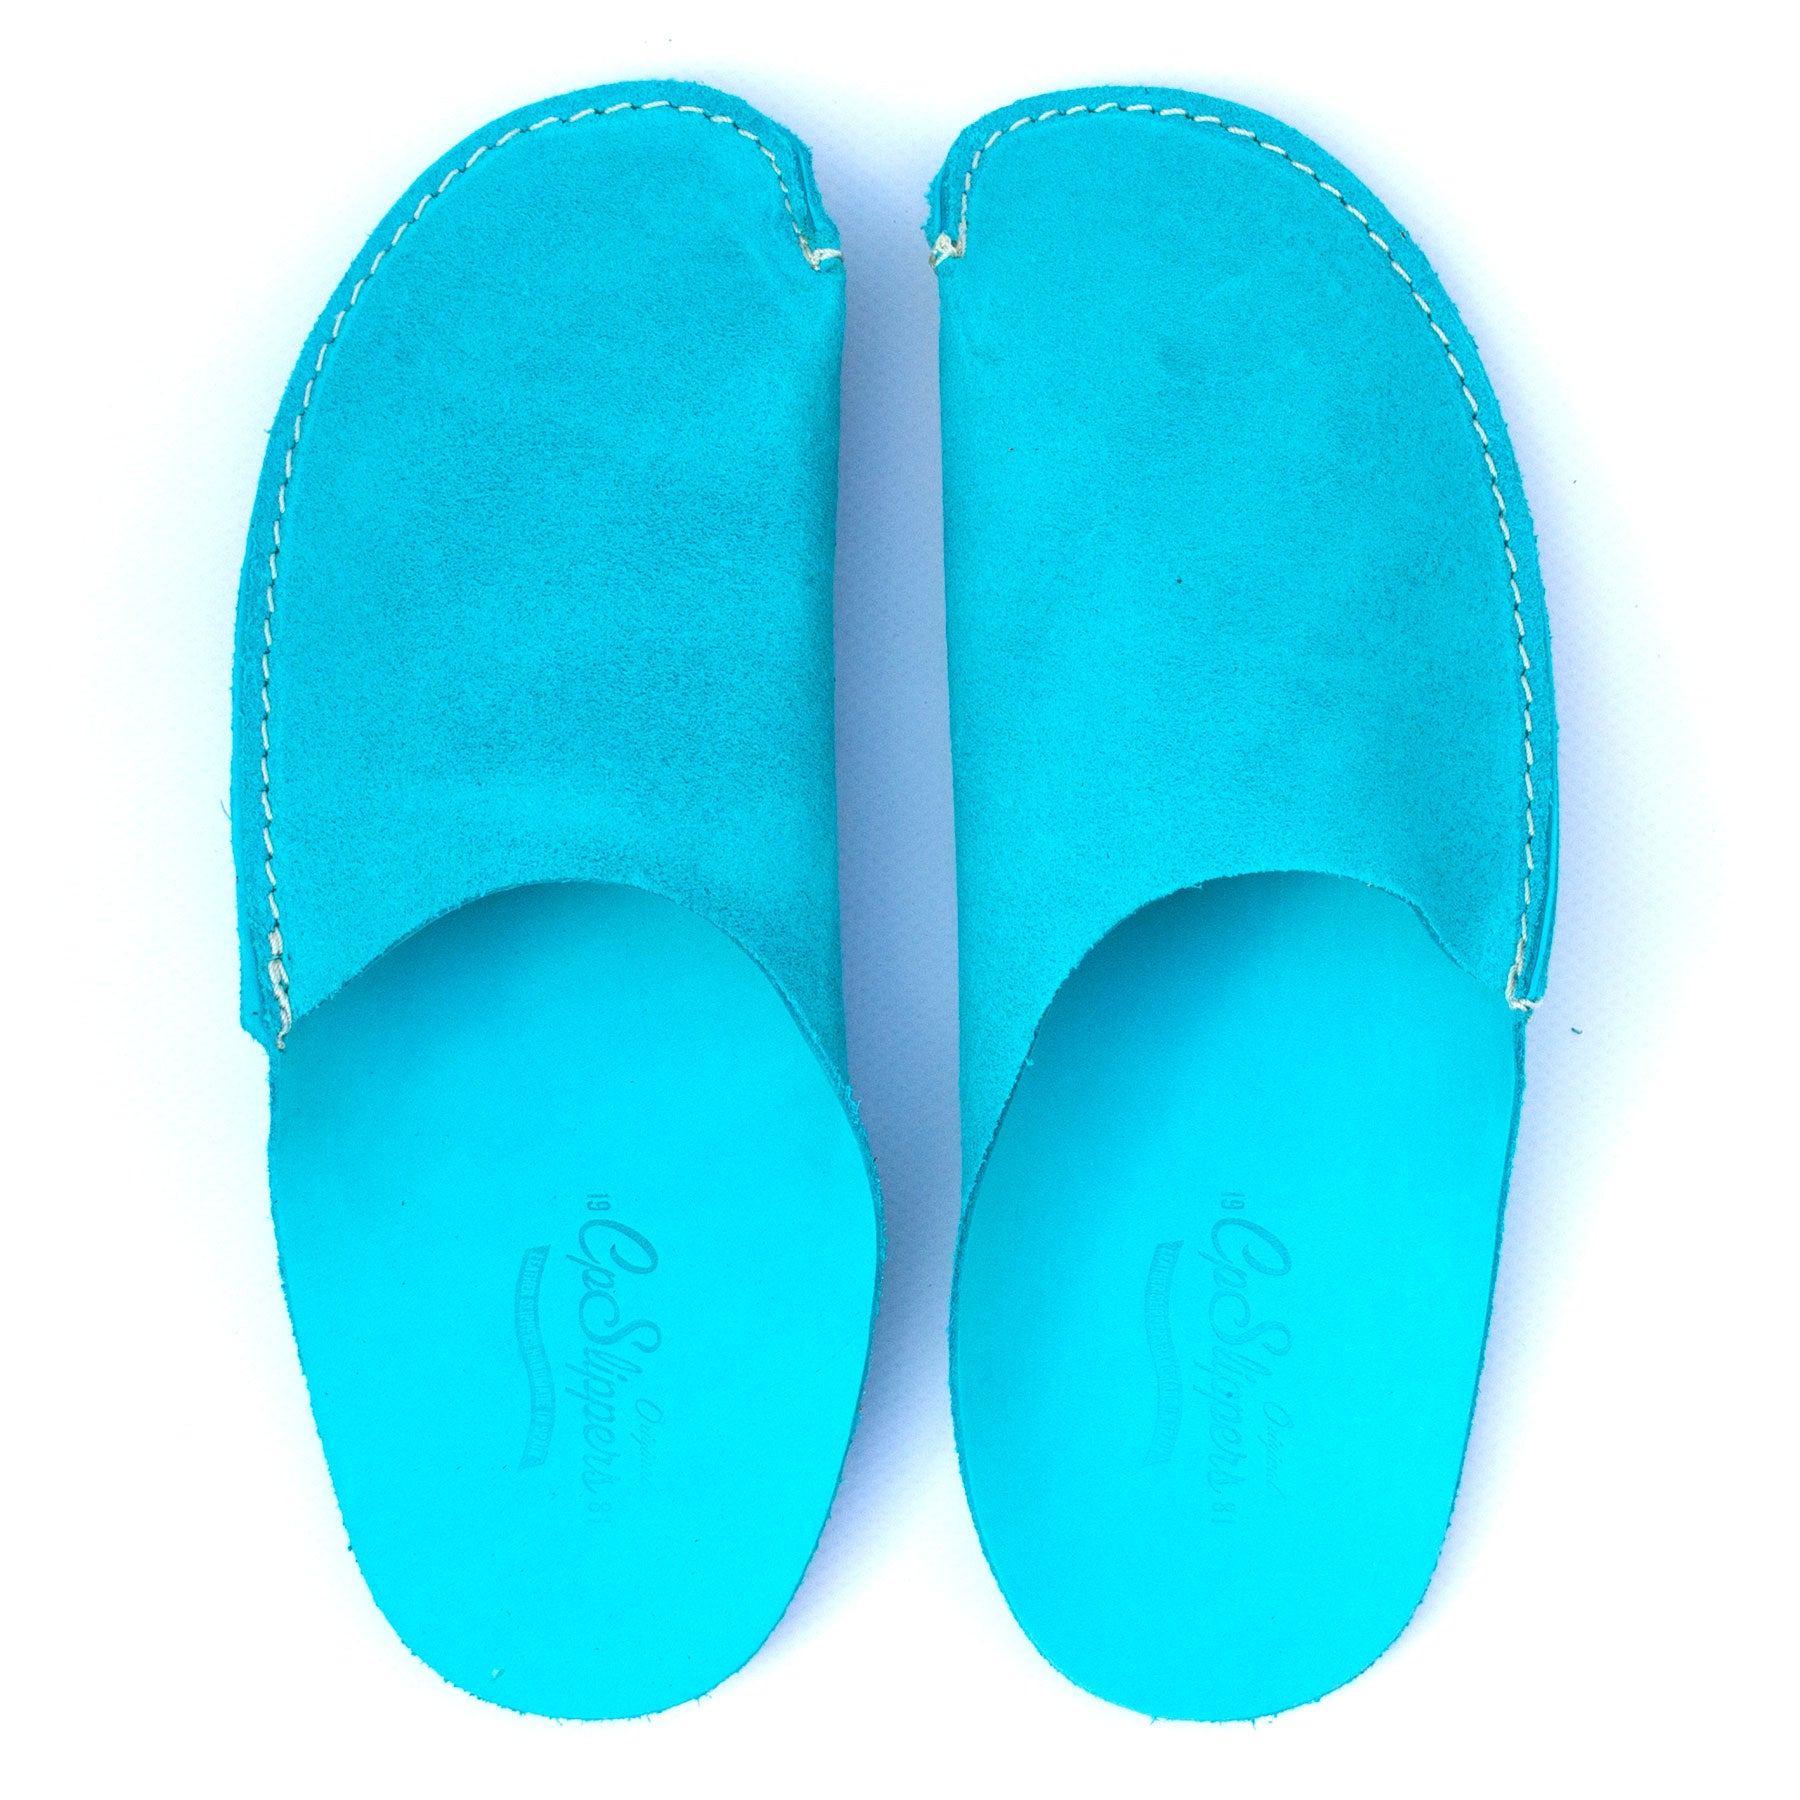 Turquoise CP Slippers Minimalist home shoes for man and woman